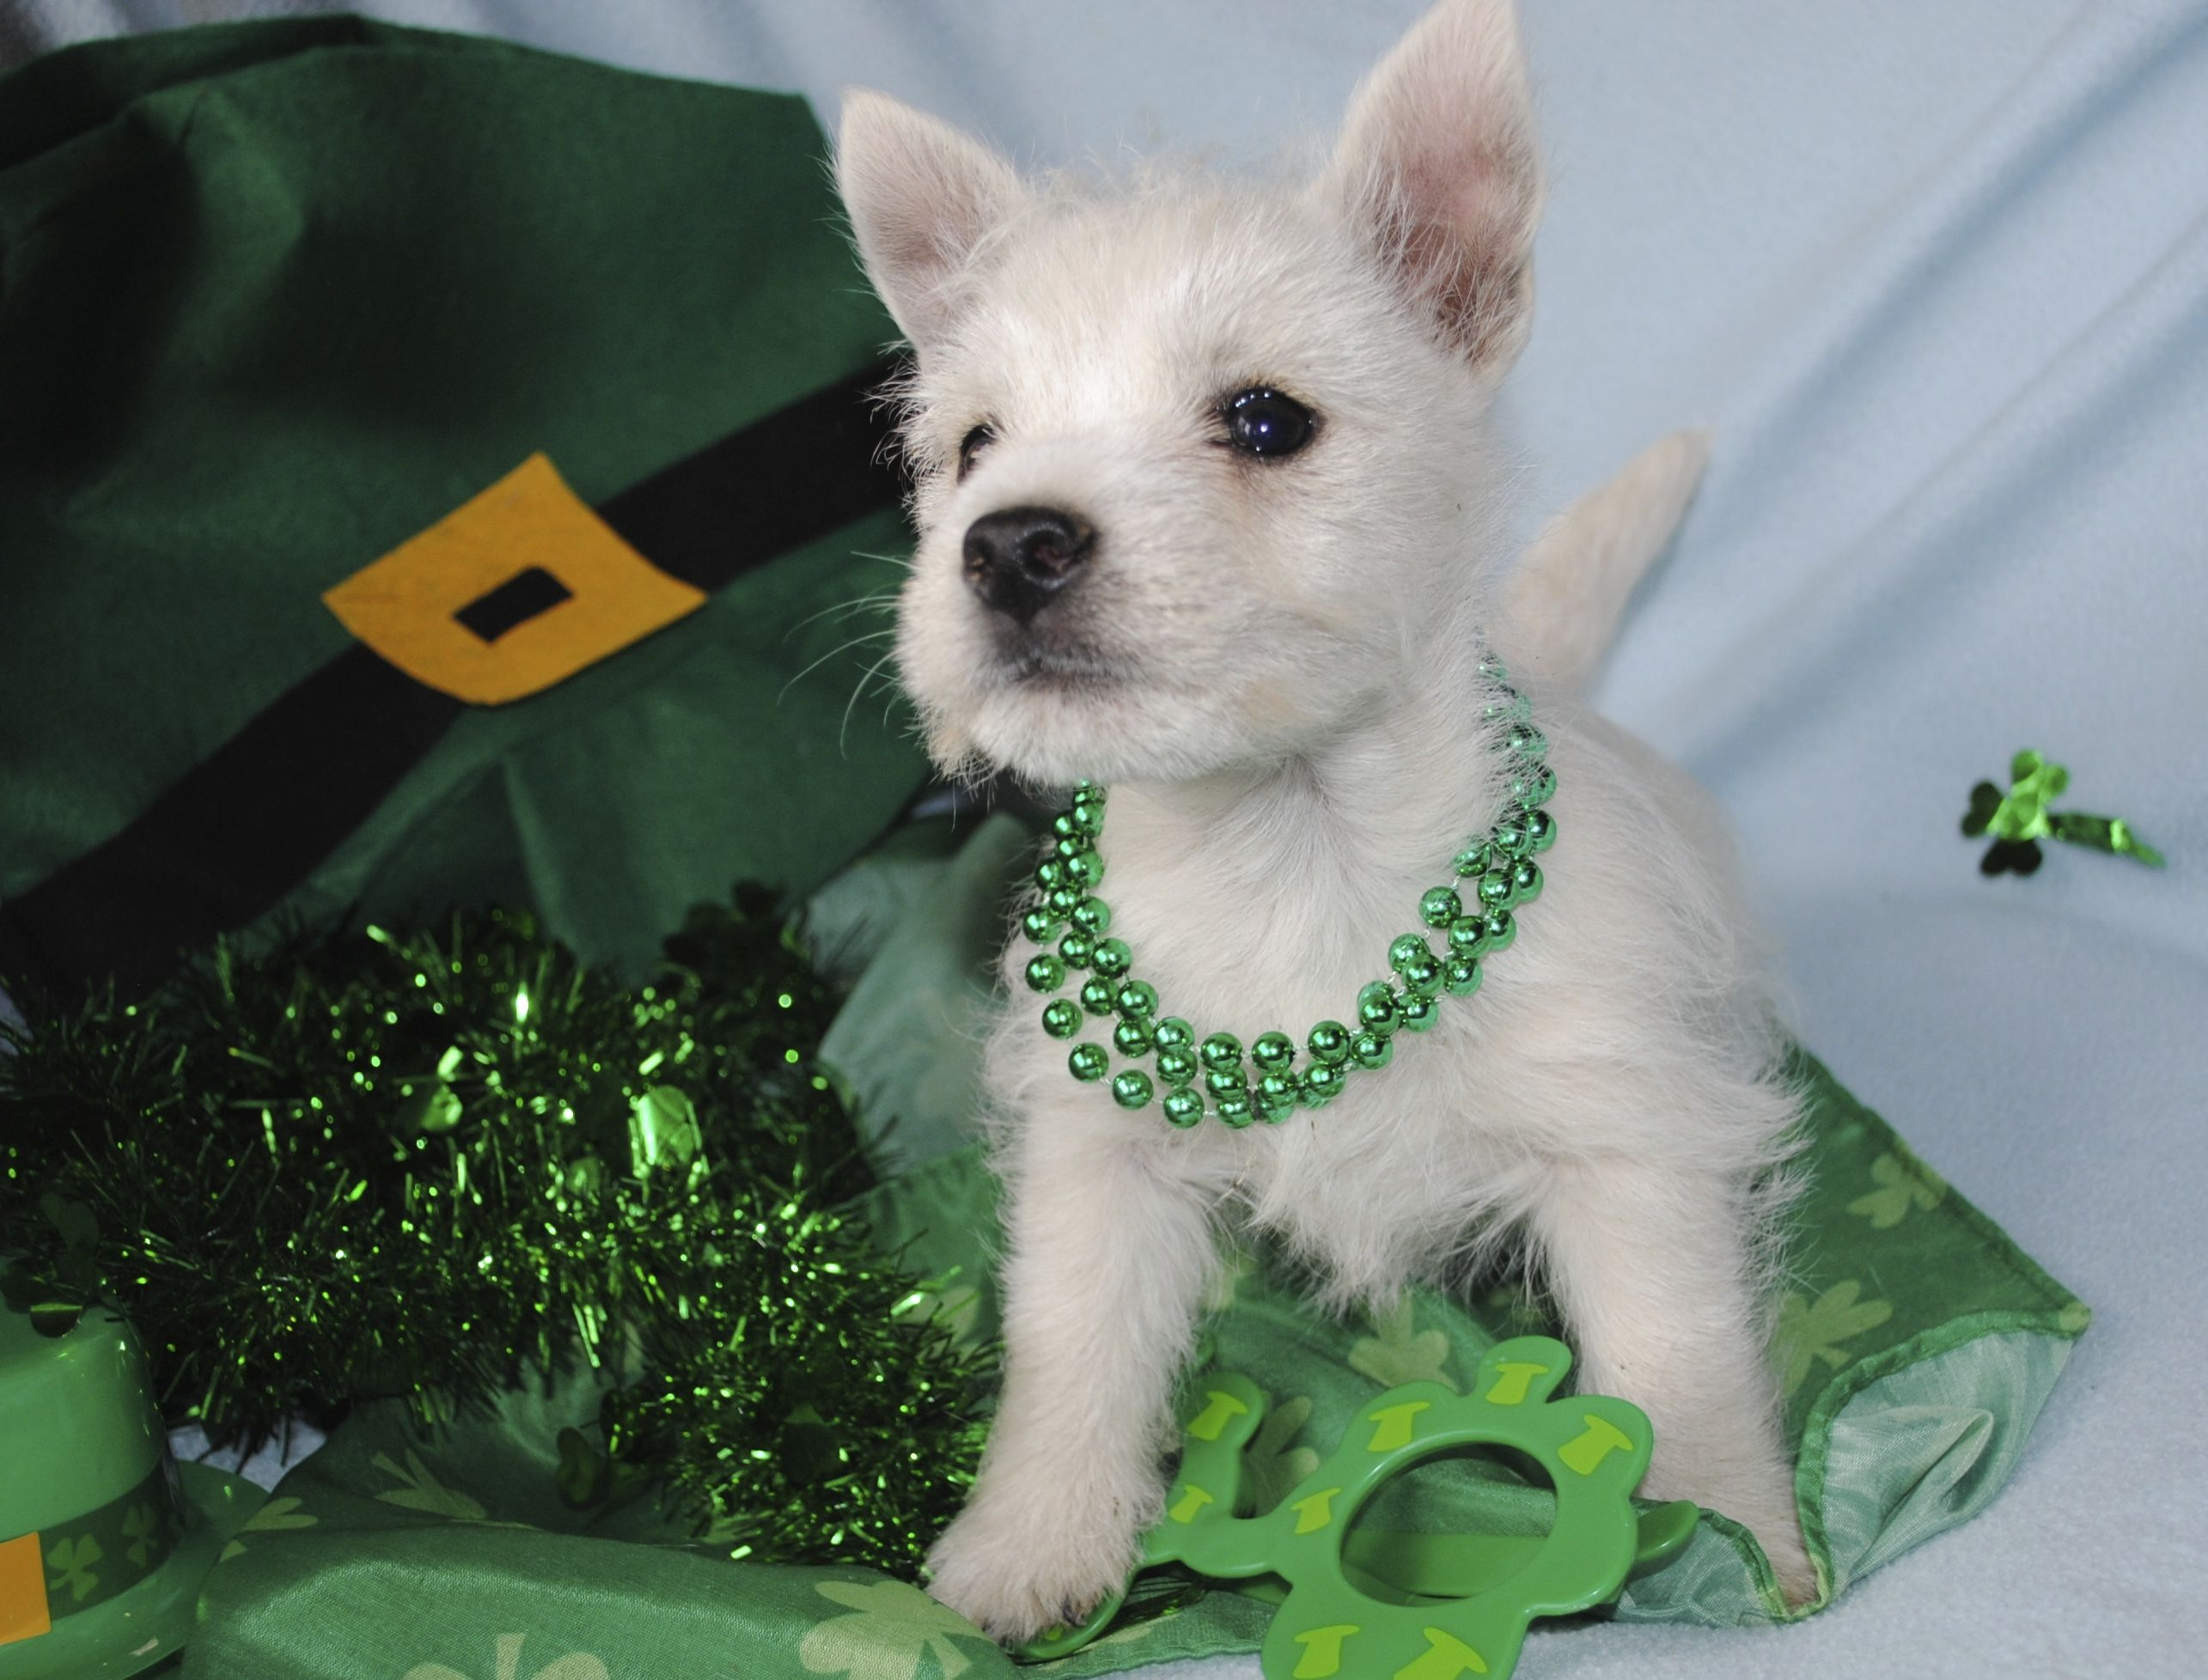 Another adorable Westie puppy! Please contact us if